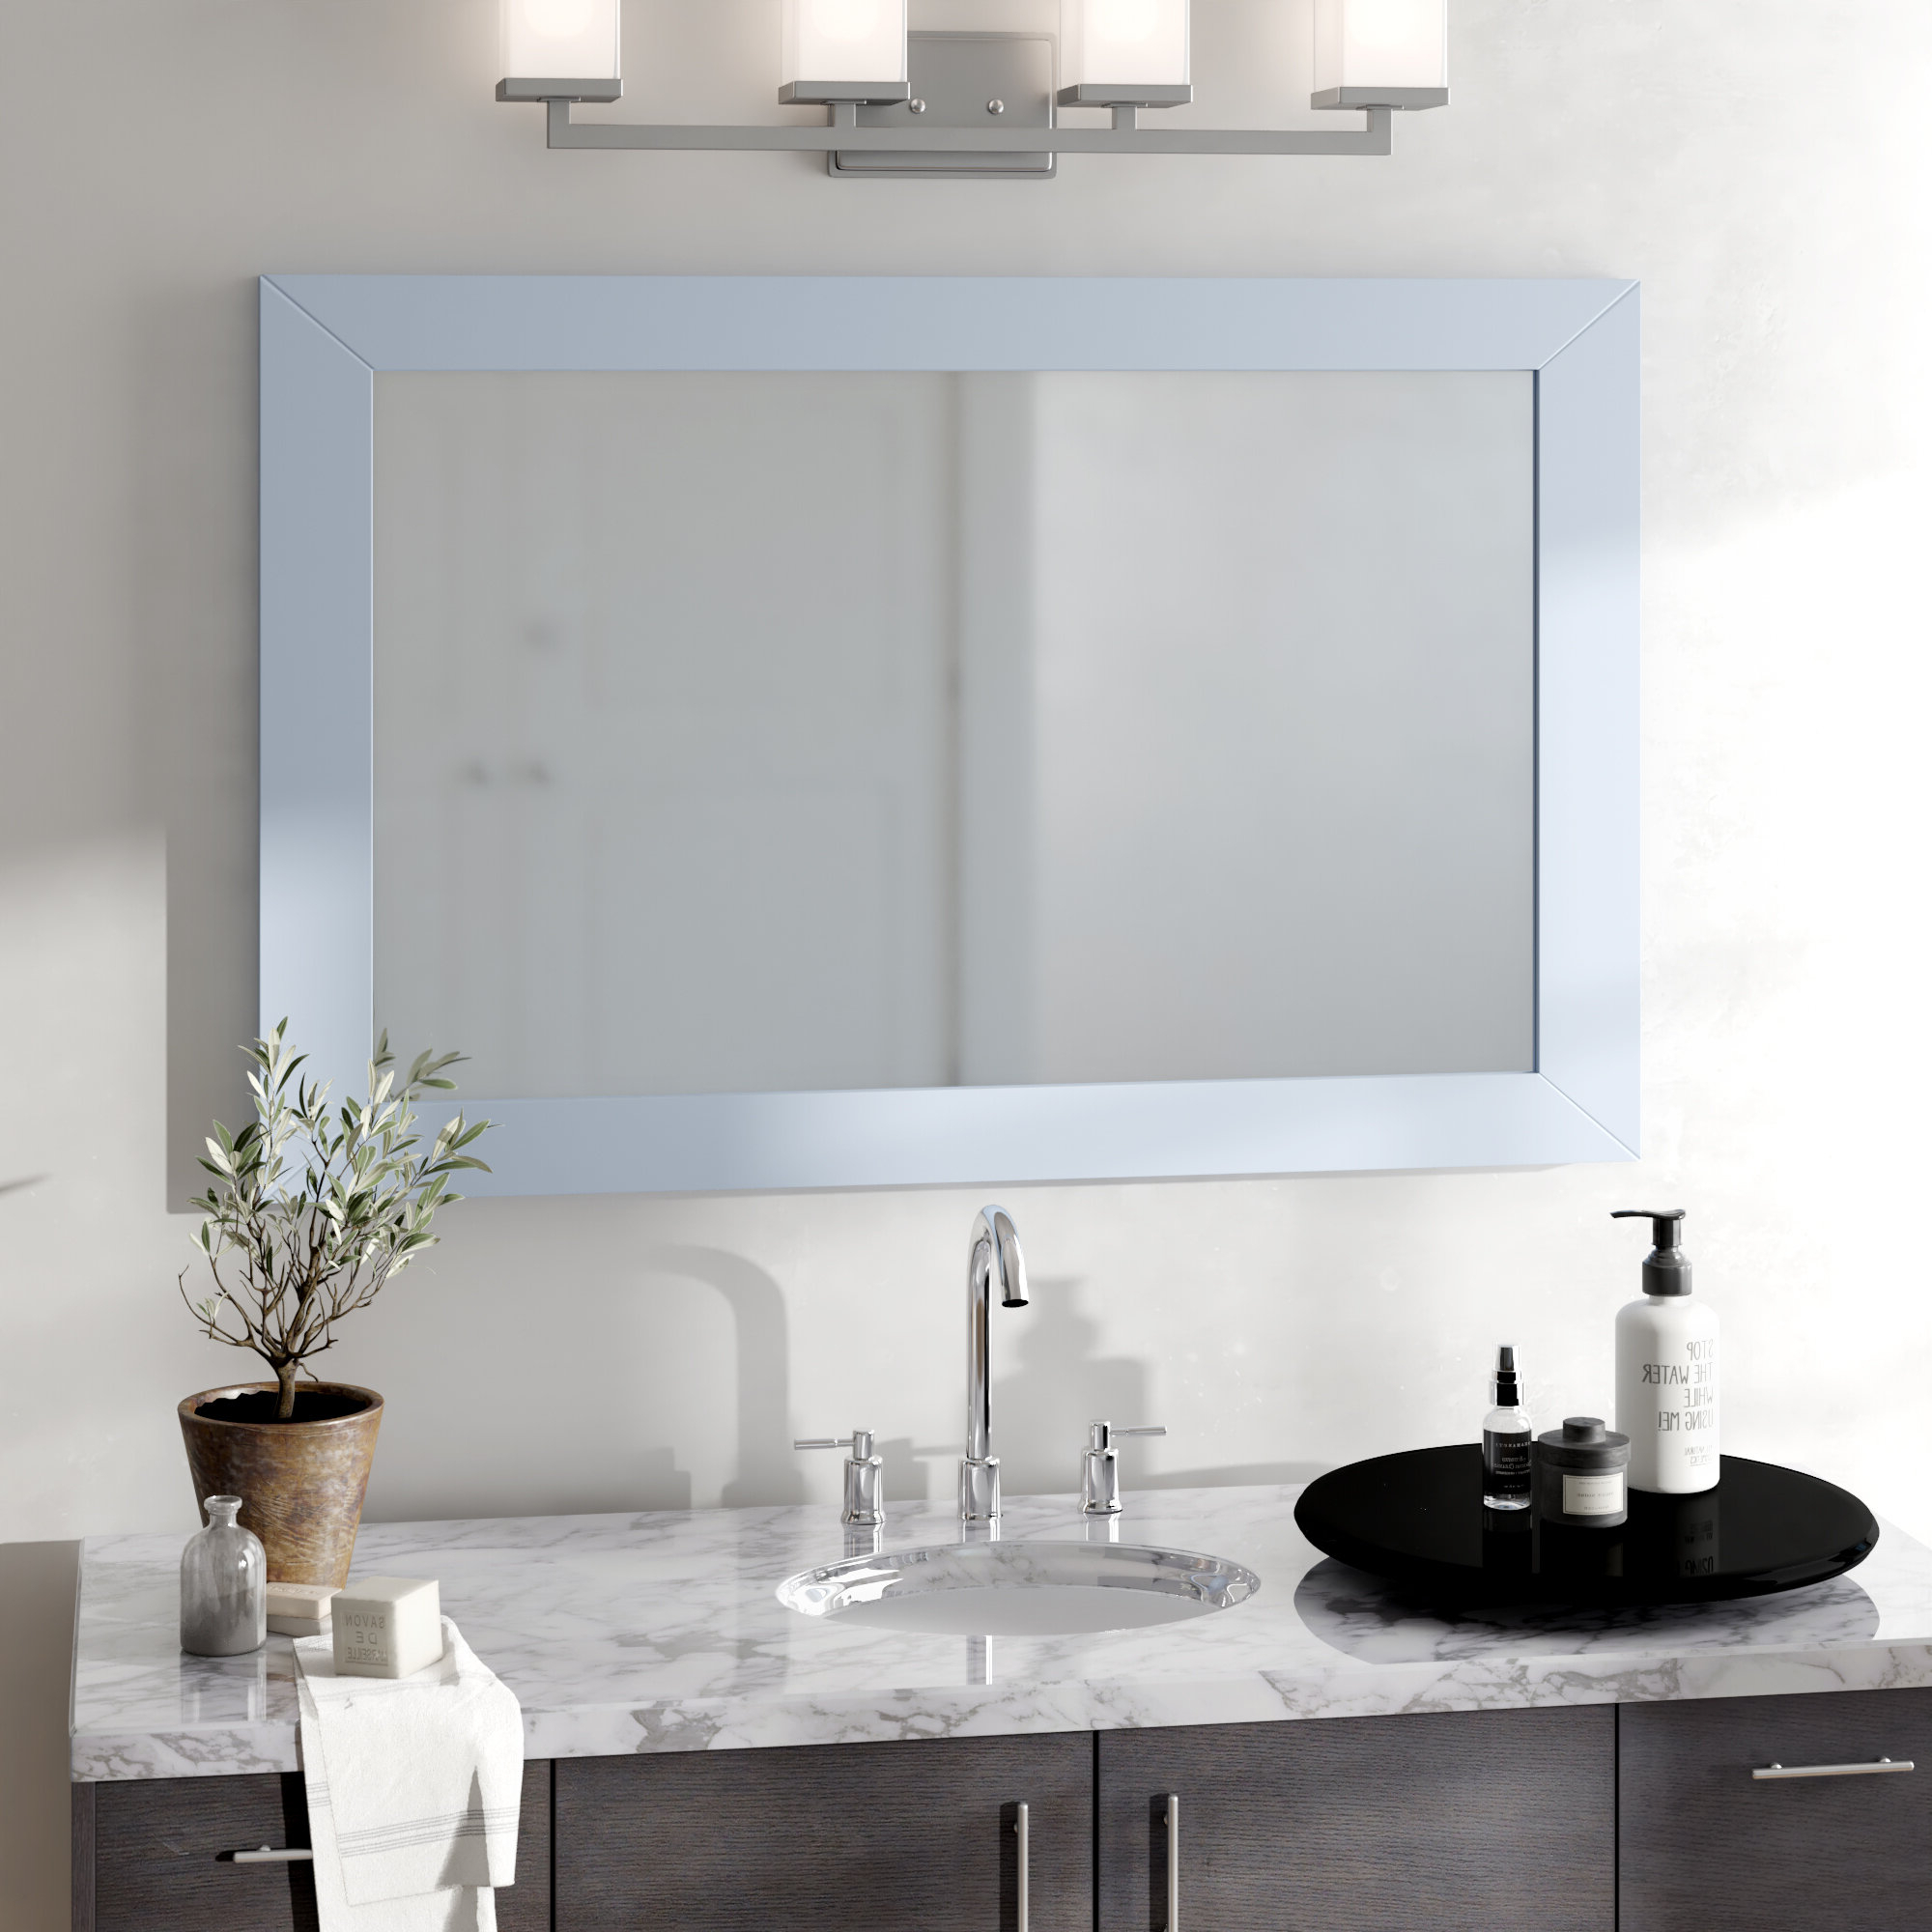 Frames For Bathroom Wall Mirrors Intended For Current Piccirillo Rectangle Framed Bathroom Wall Mirror (View 8 of 20)